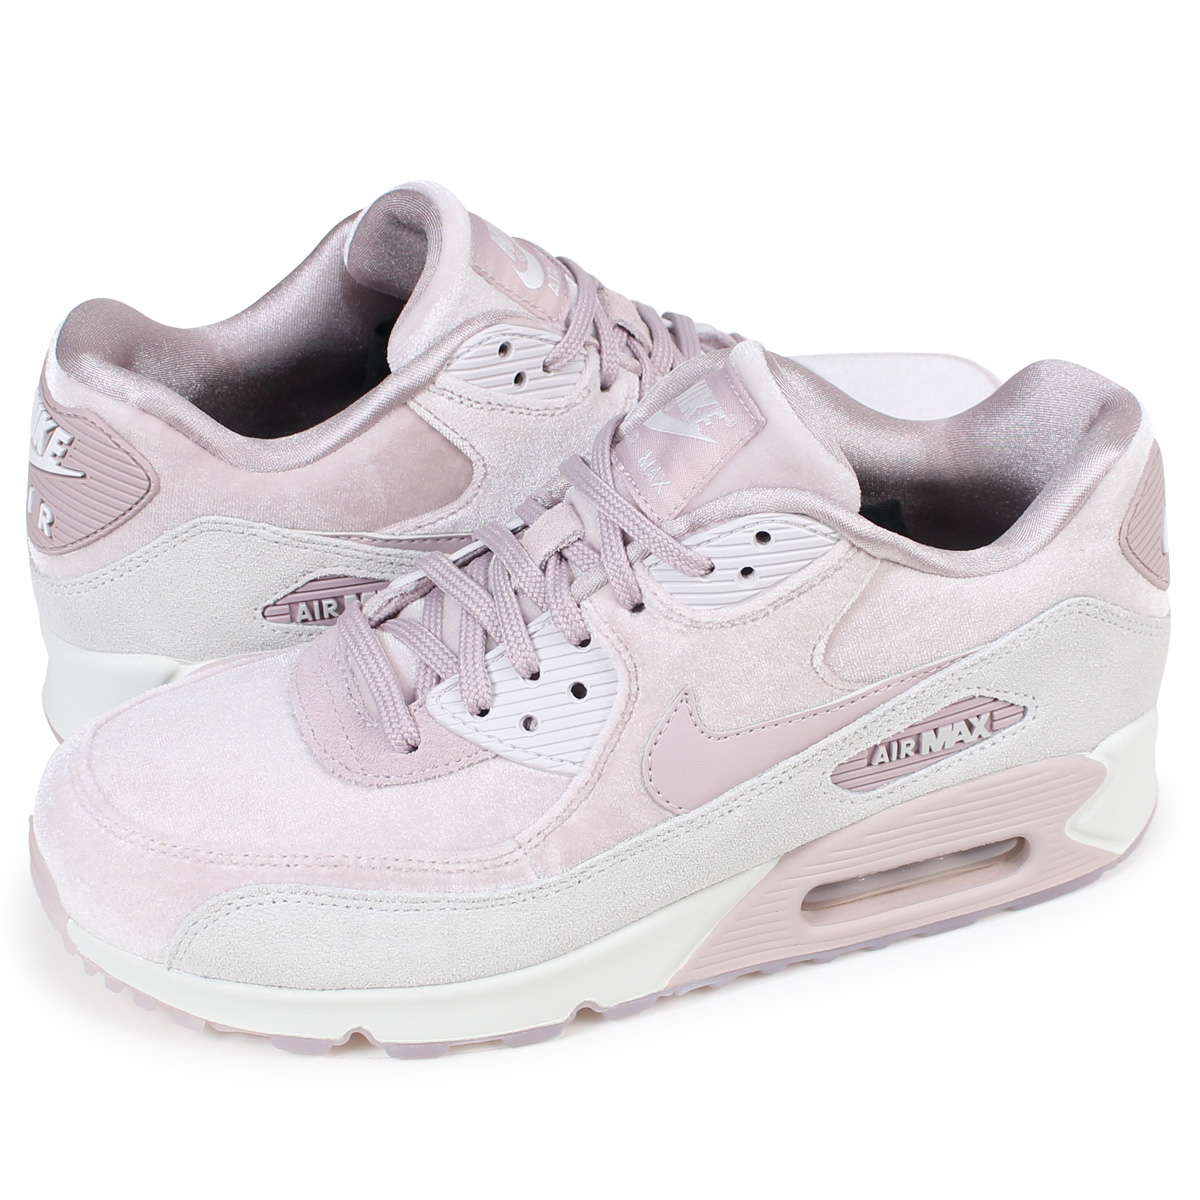 new arrival e2f28 83568 NIKE WMNS AIR MAX 90 LX Kie Ney AMAX 90 Lady's sneakers 898,512-600 shoes  pink [1/9 Shinnyu load] [1801]